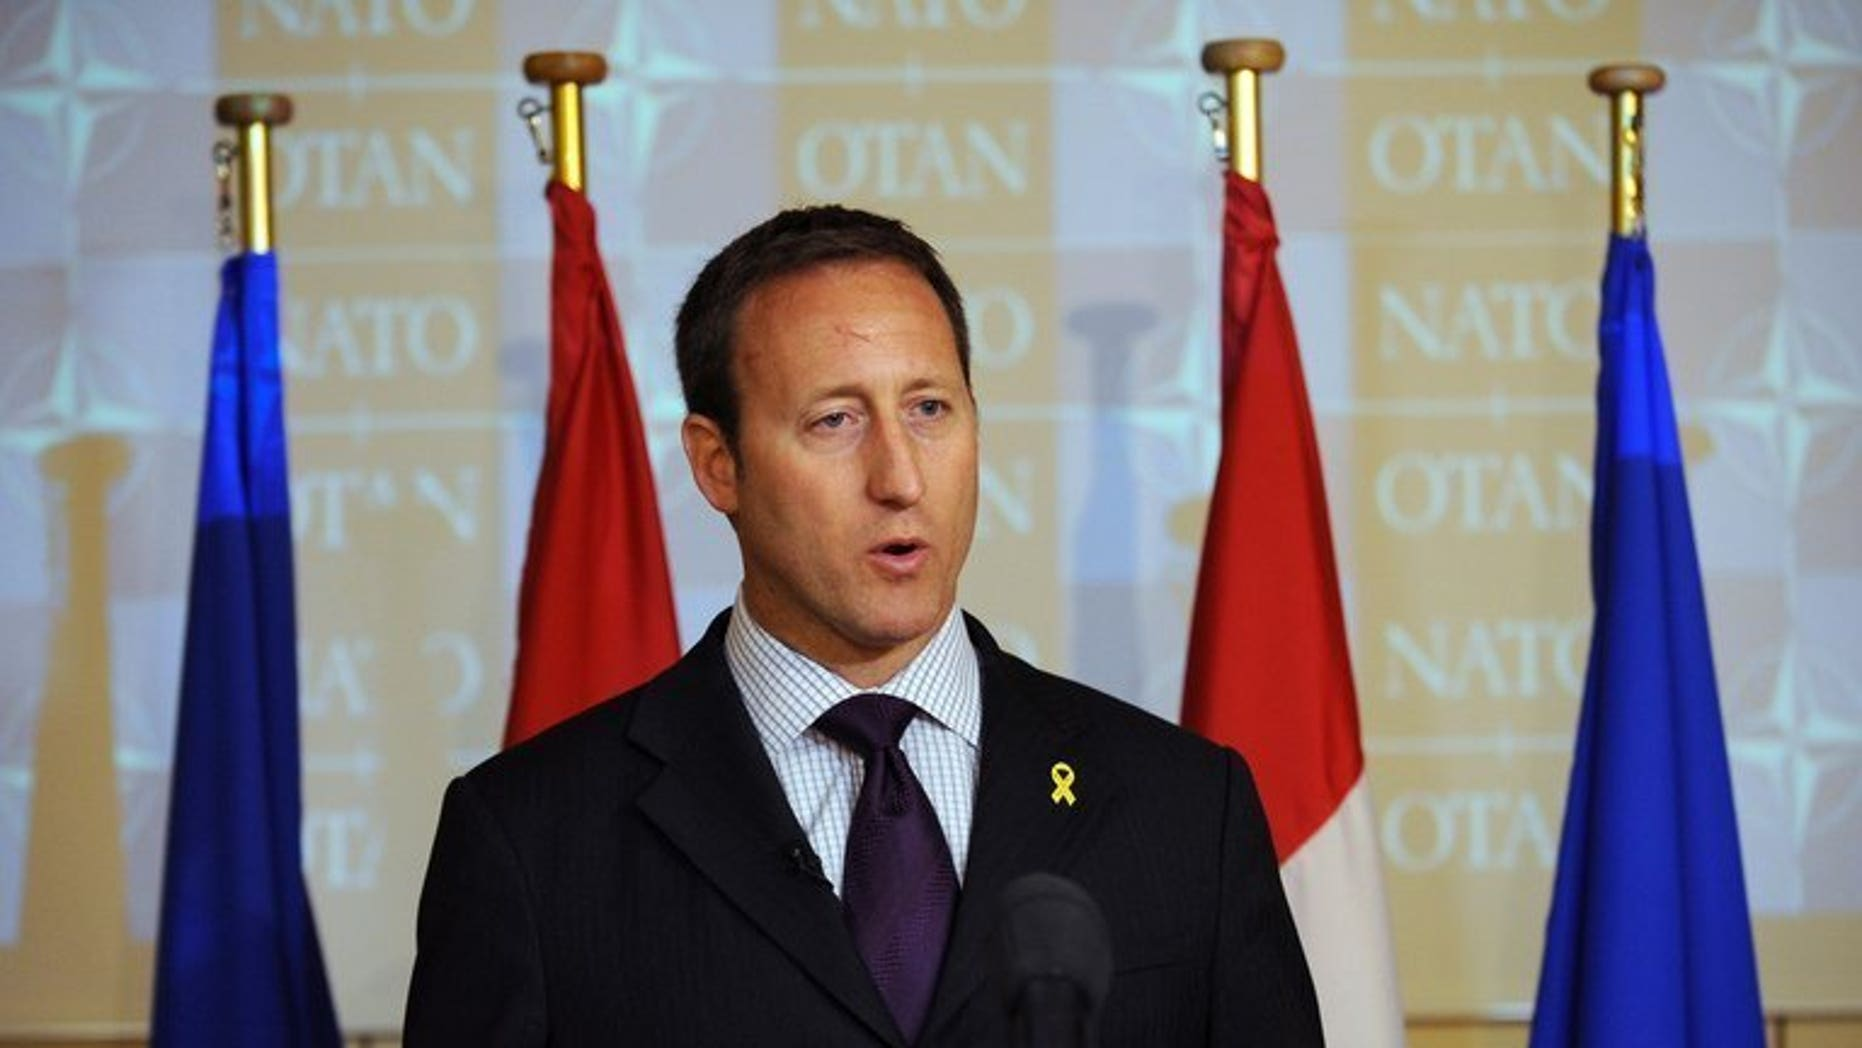 Canadian Defence minister Peter Gordon Mackay at a press conference in Brussels, on June 9, 2011. Canada will send a platoon to join Brazilian troops attempting to stabilize Haiti as the hurricane season looms, MacKay announced Wednesday.